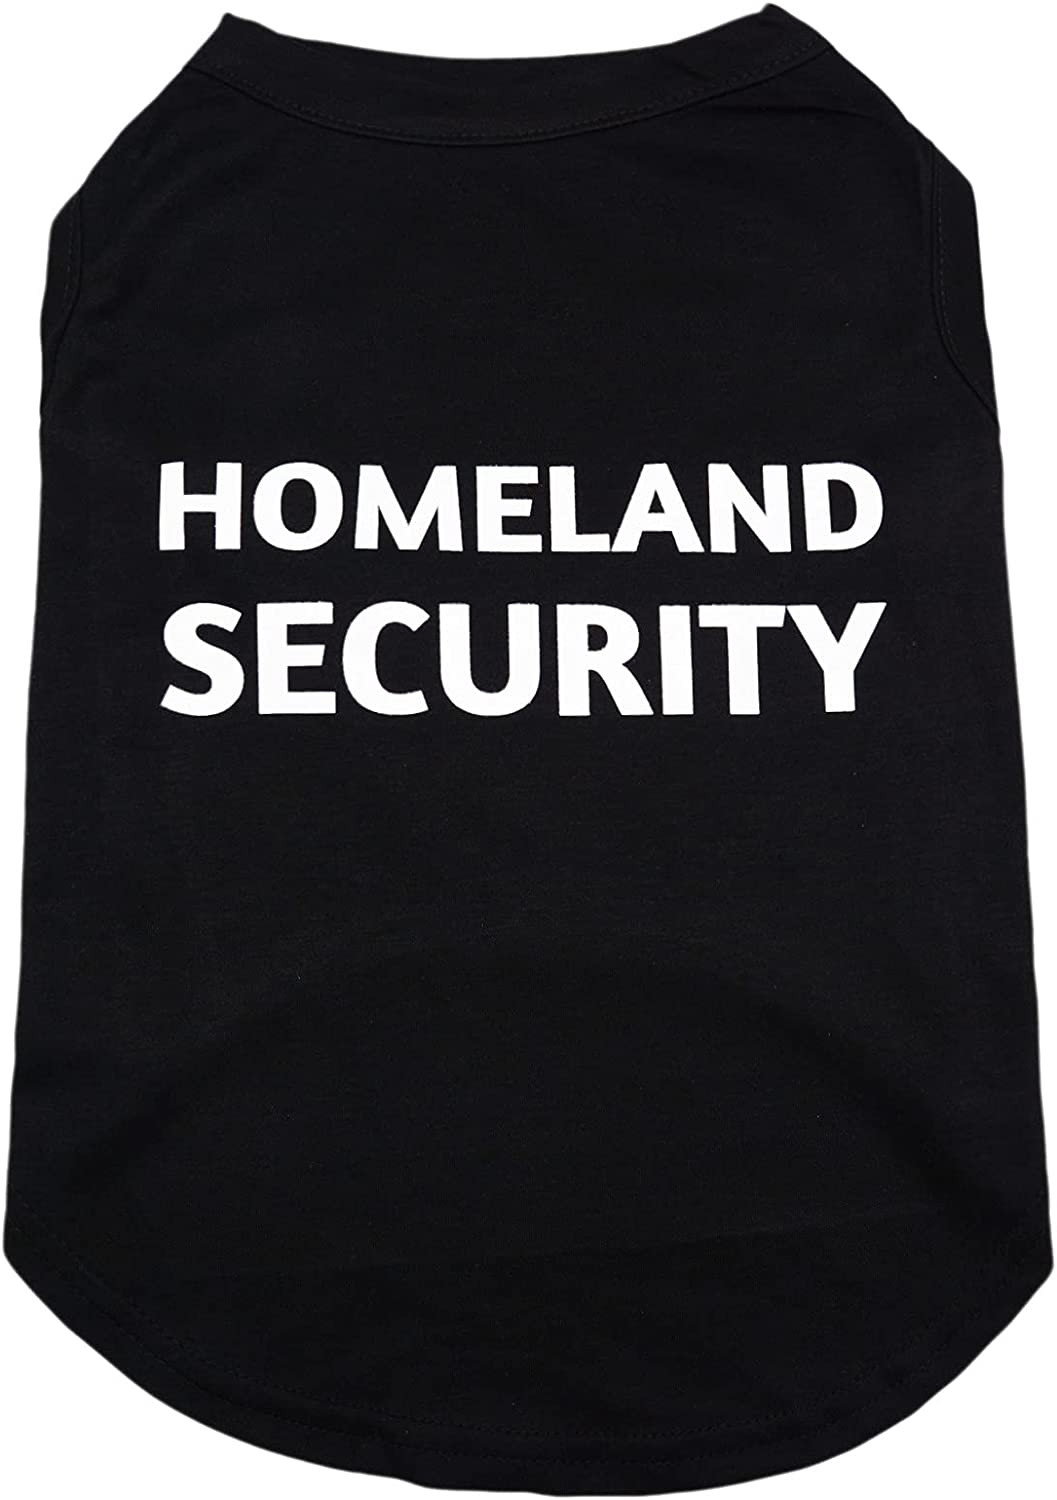 Security Industry No. 1 Dog Shirts Ranking TOP3 Lightweight Homeland Cotton P Black